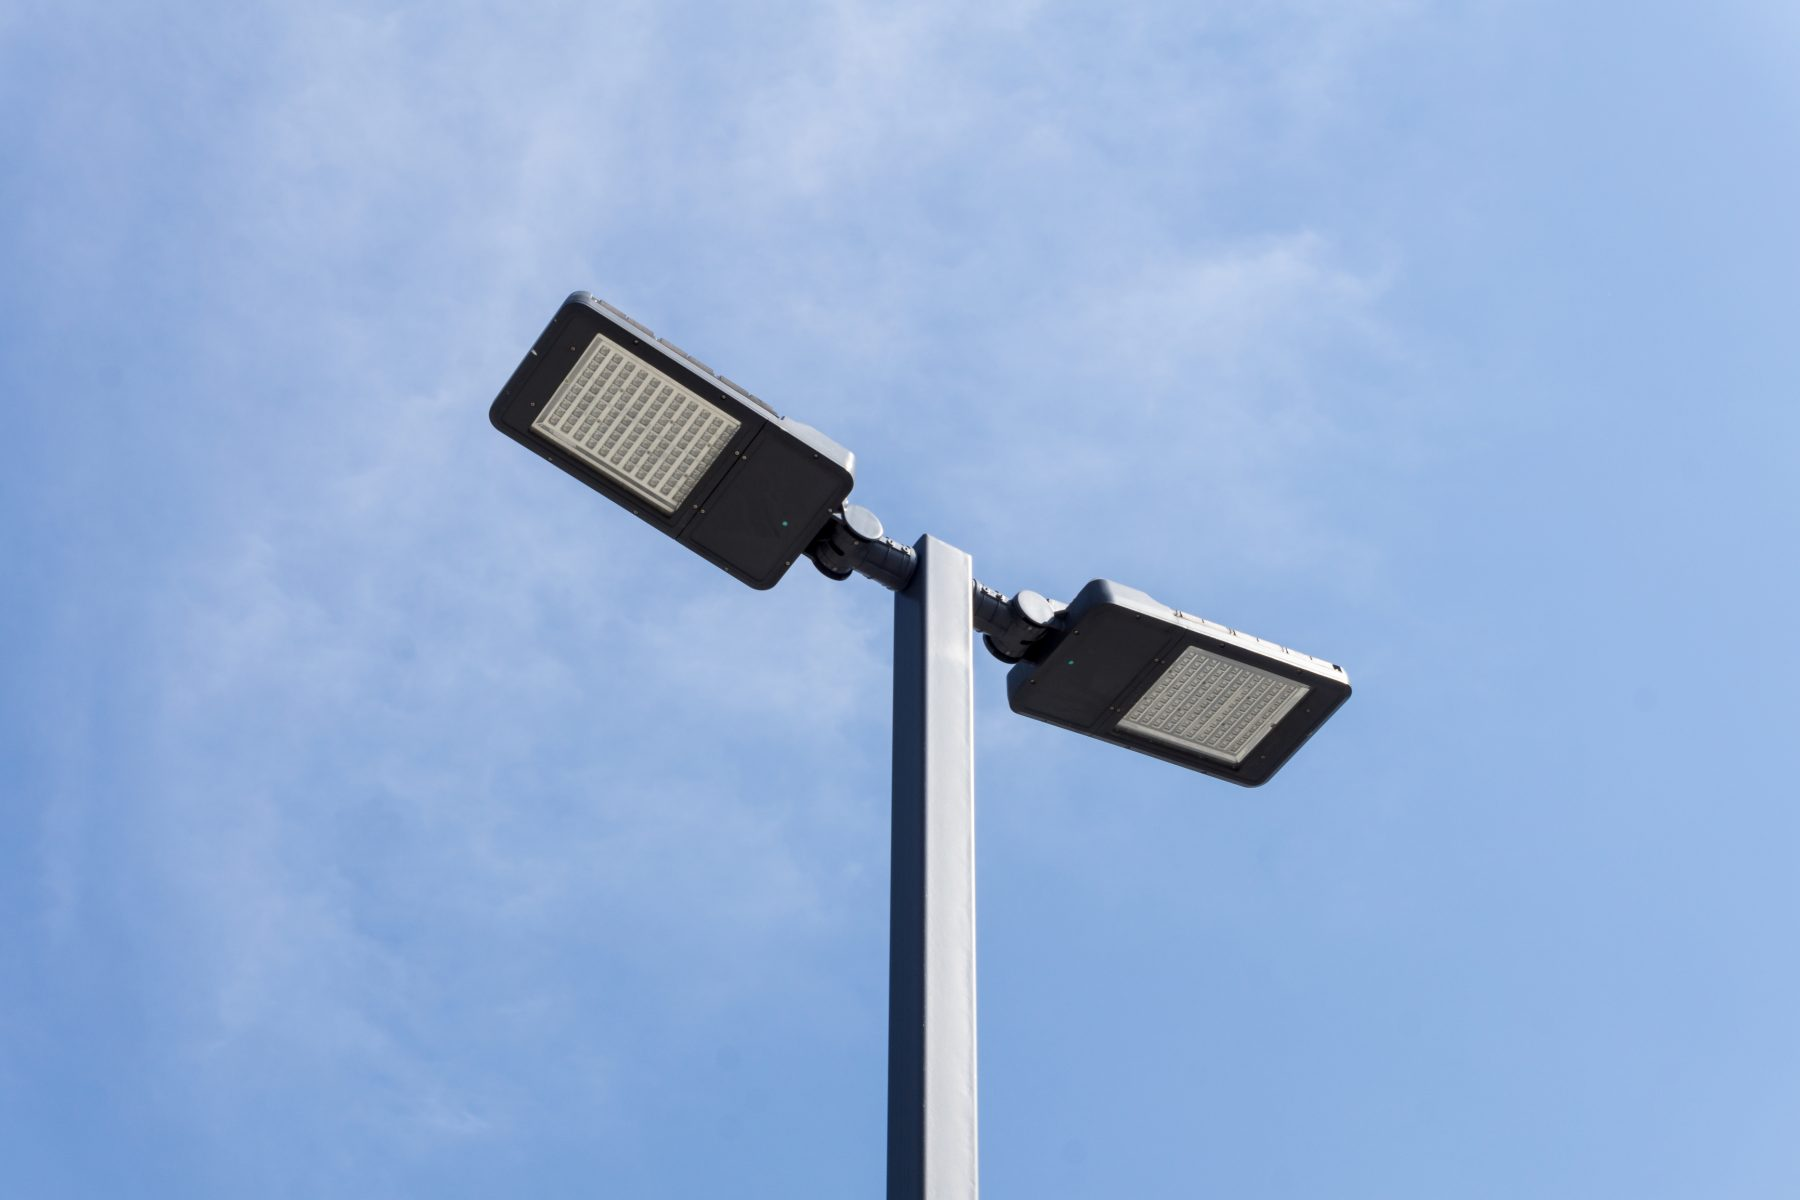 Led Lighting Has A Short Payback Period And Should Be A